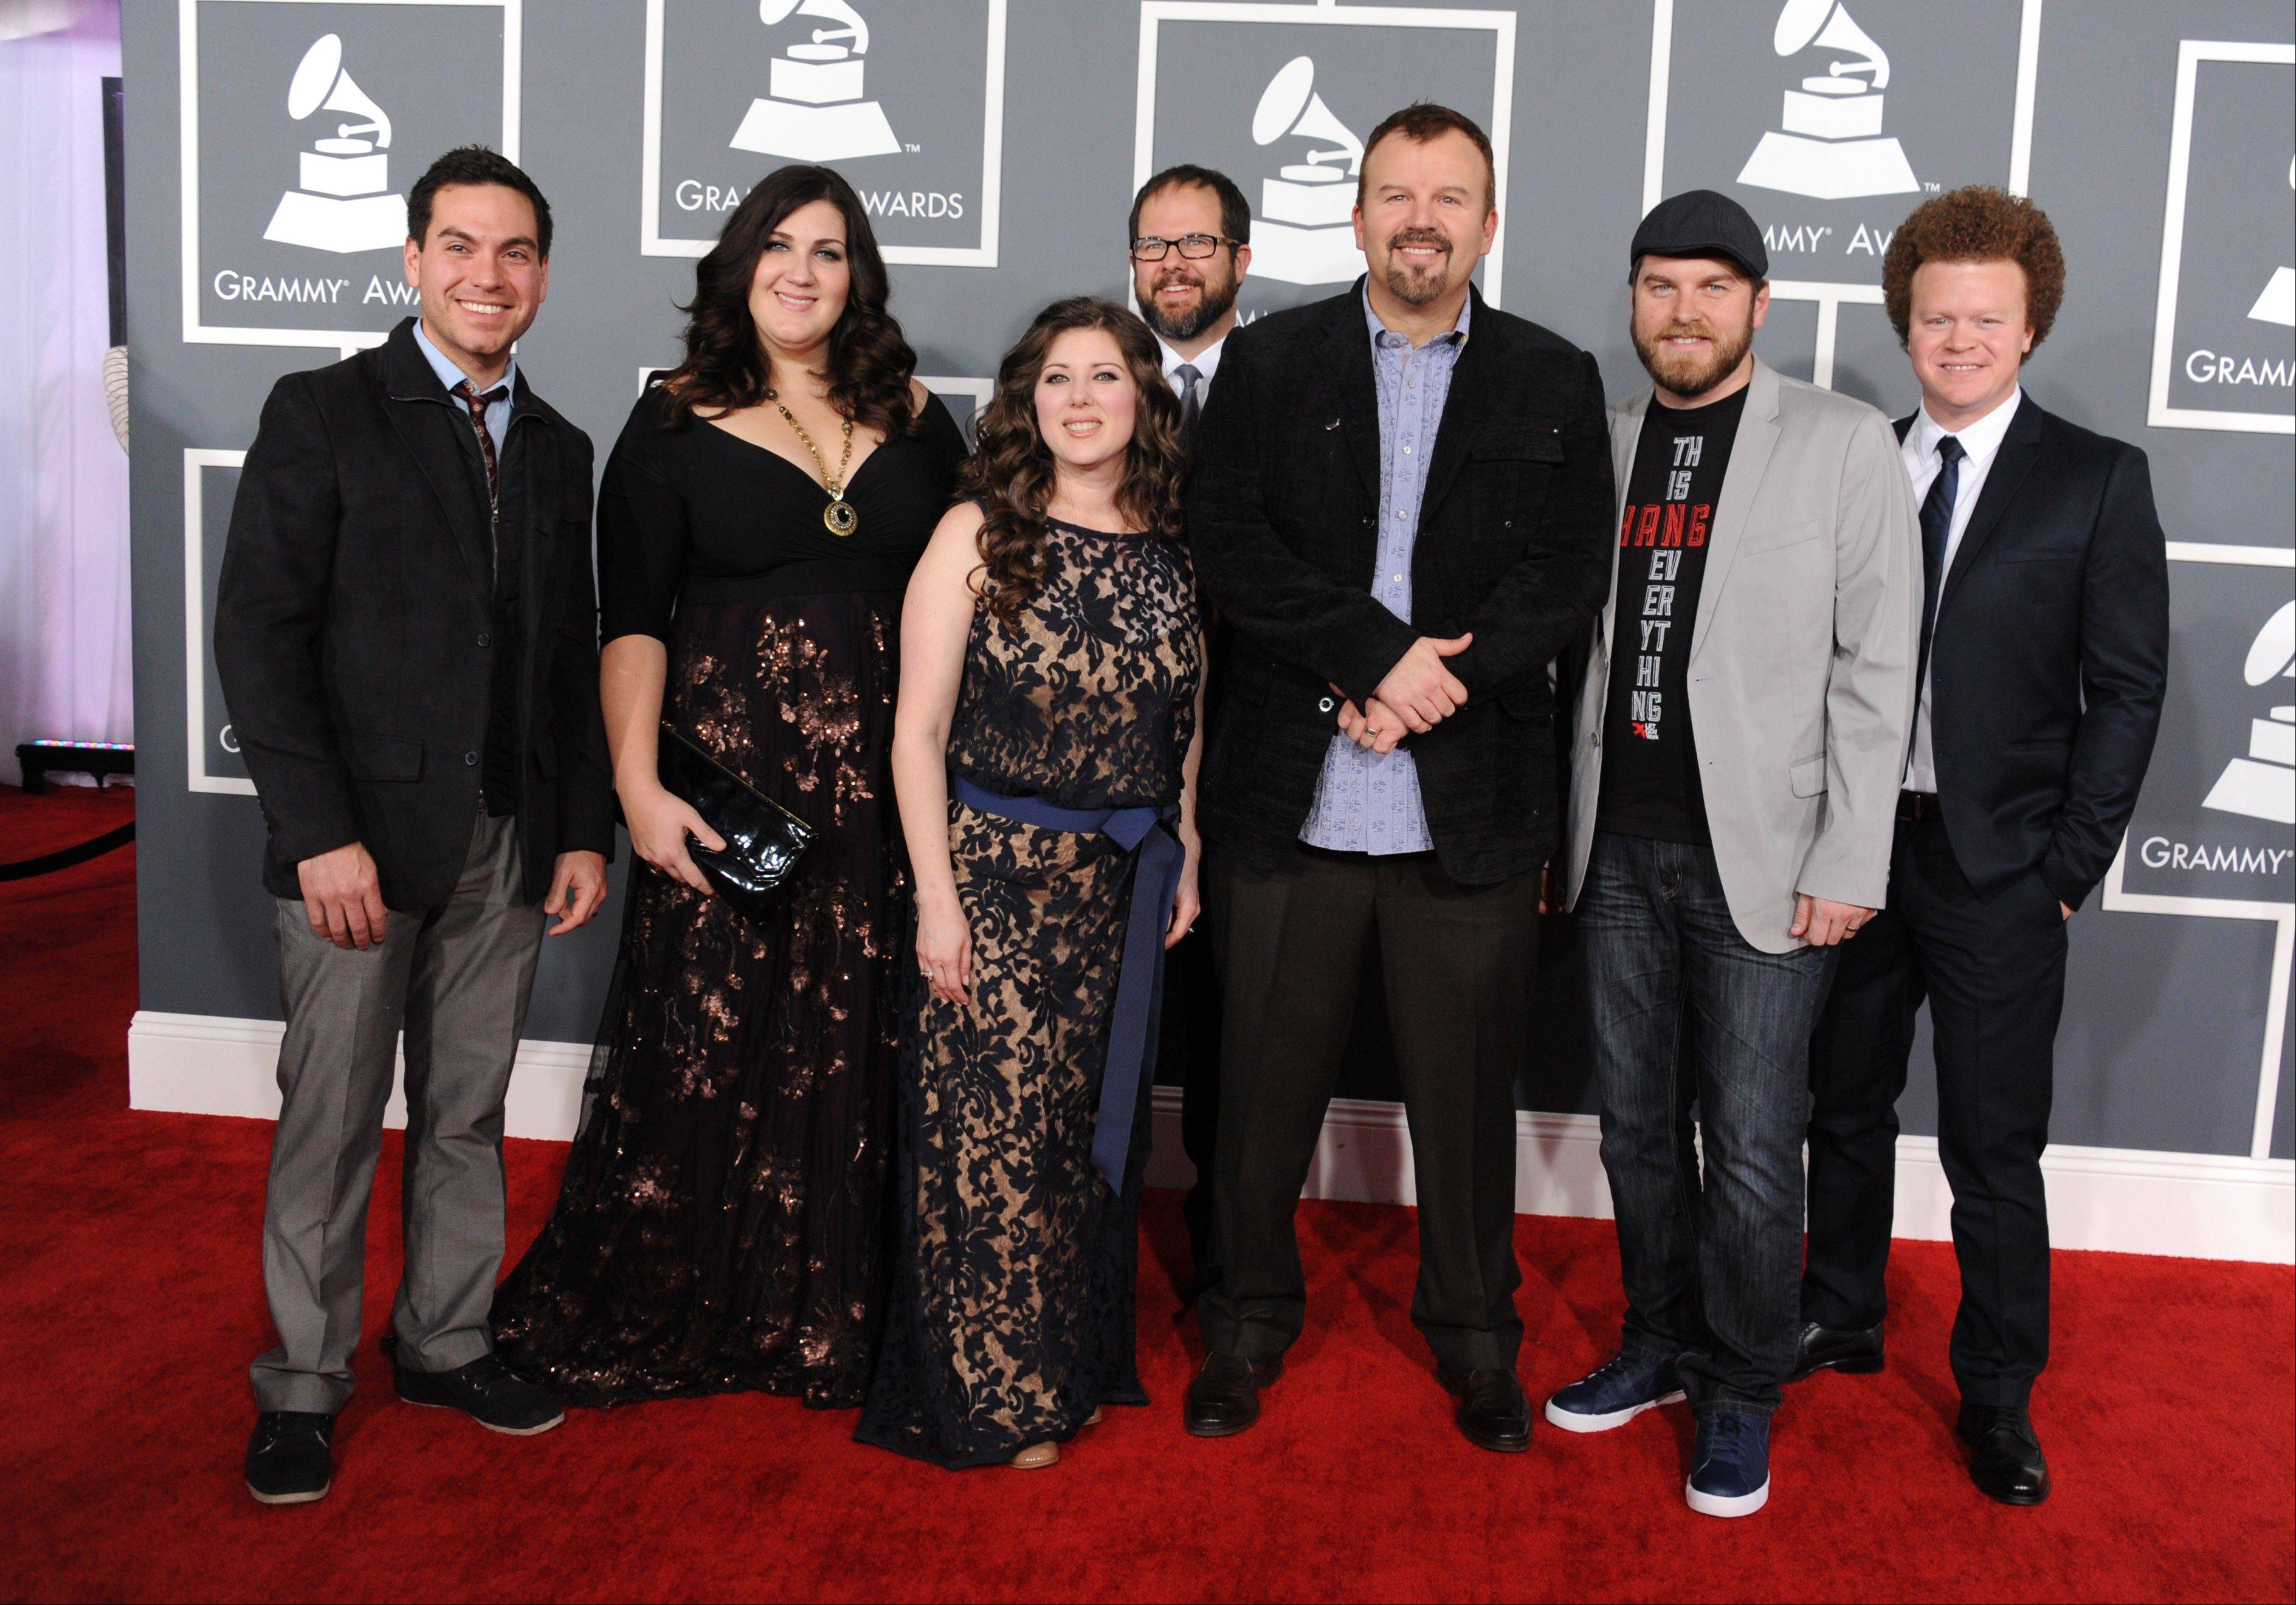 Casting Crowns to play Sears Centre